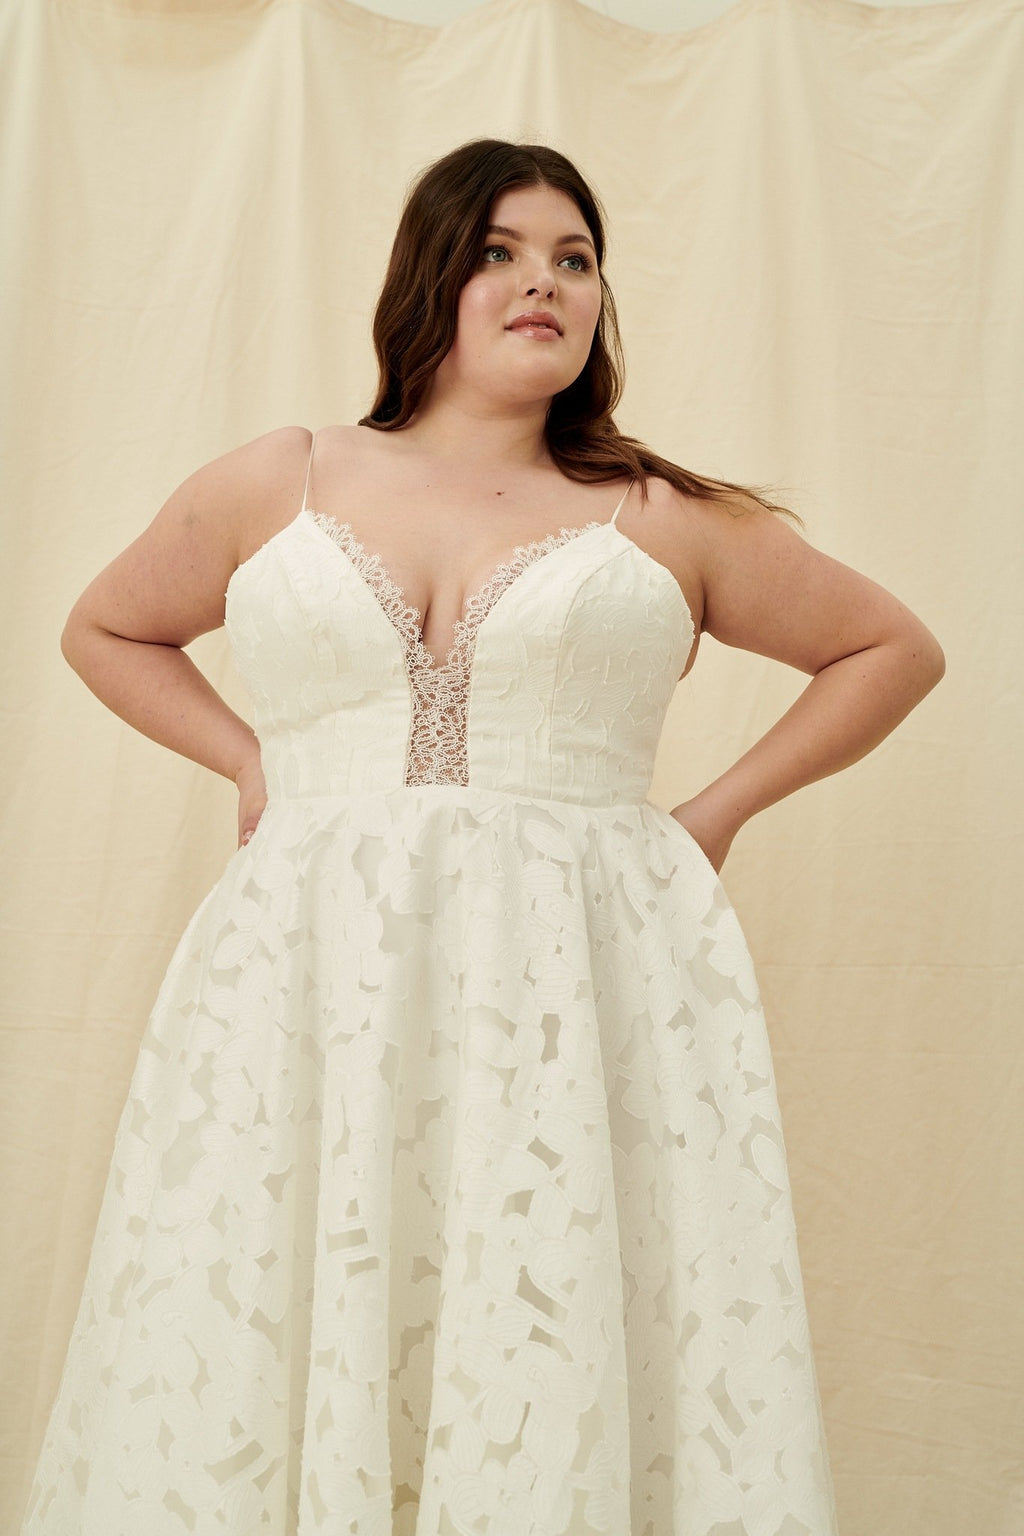 Floral print plus size wedding dress with a corset back and silk spaghetti straps